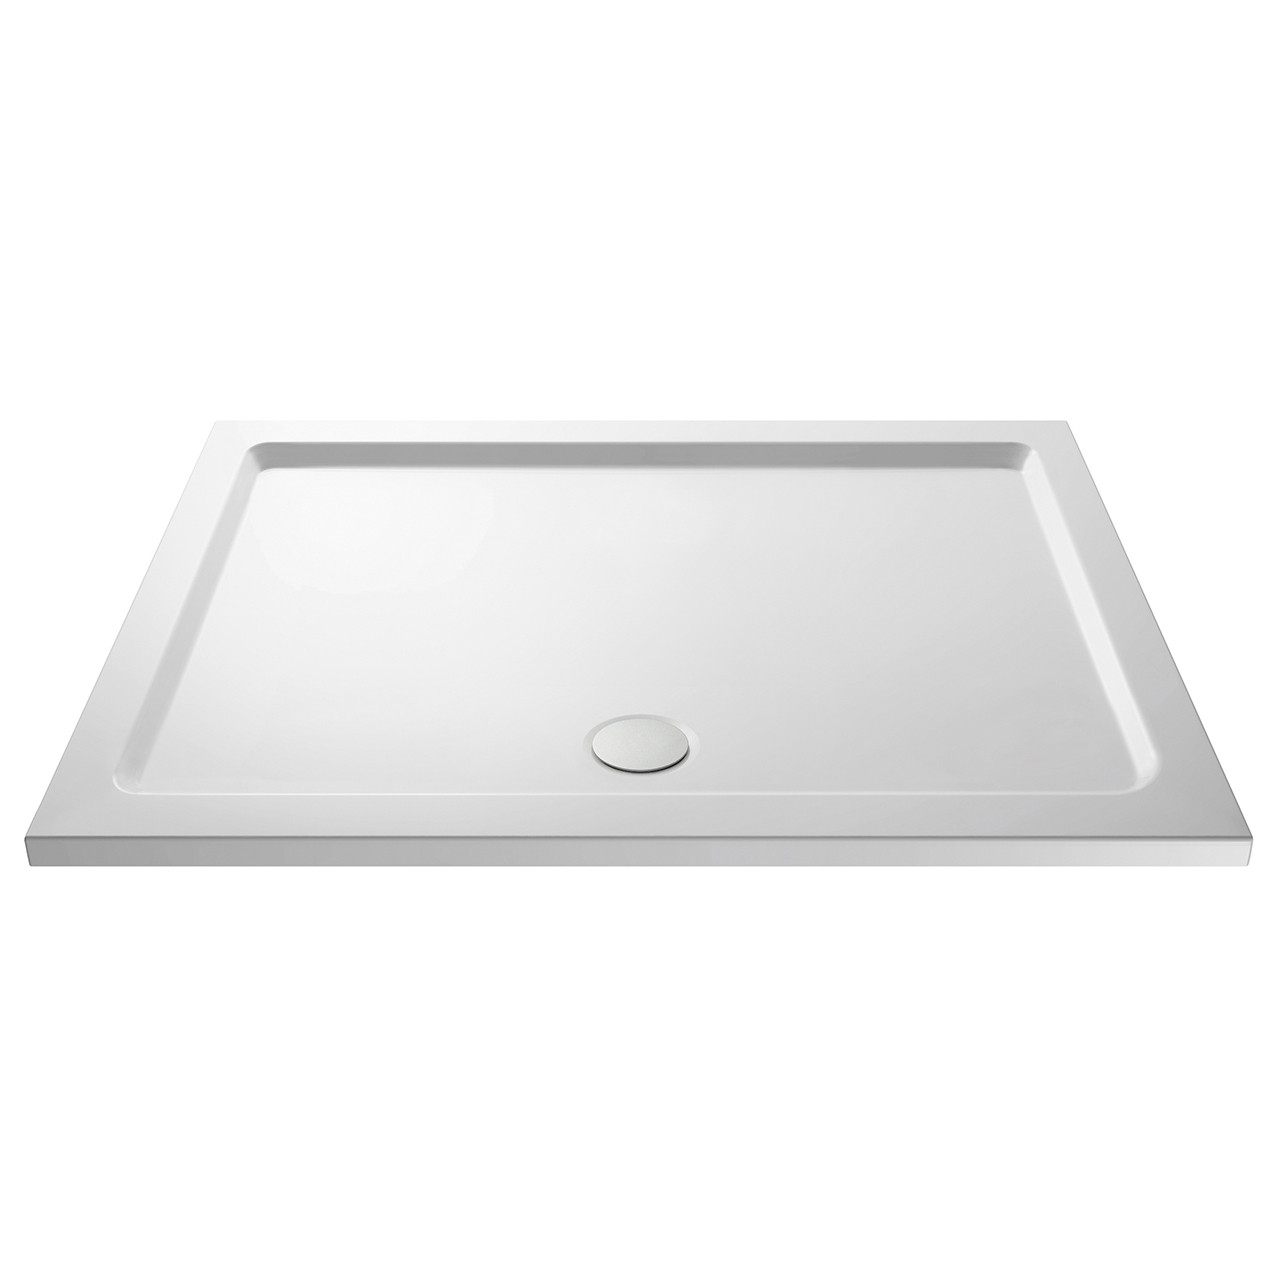 Nuie Pearlstone 1400mm x 800mm Rectangular Shower Tray with Centre Edge Waste - NTP033